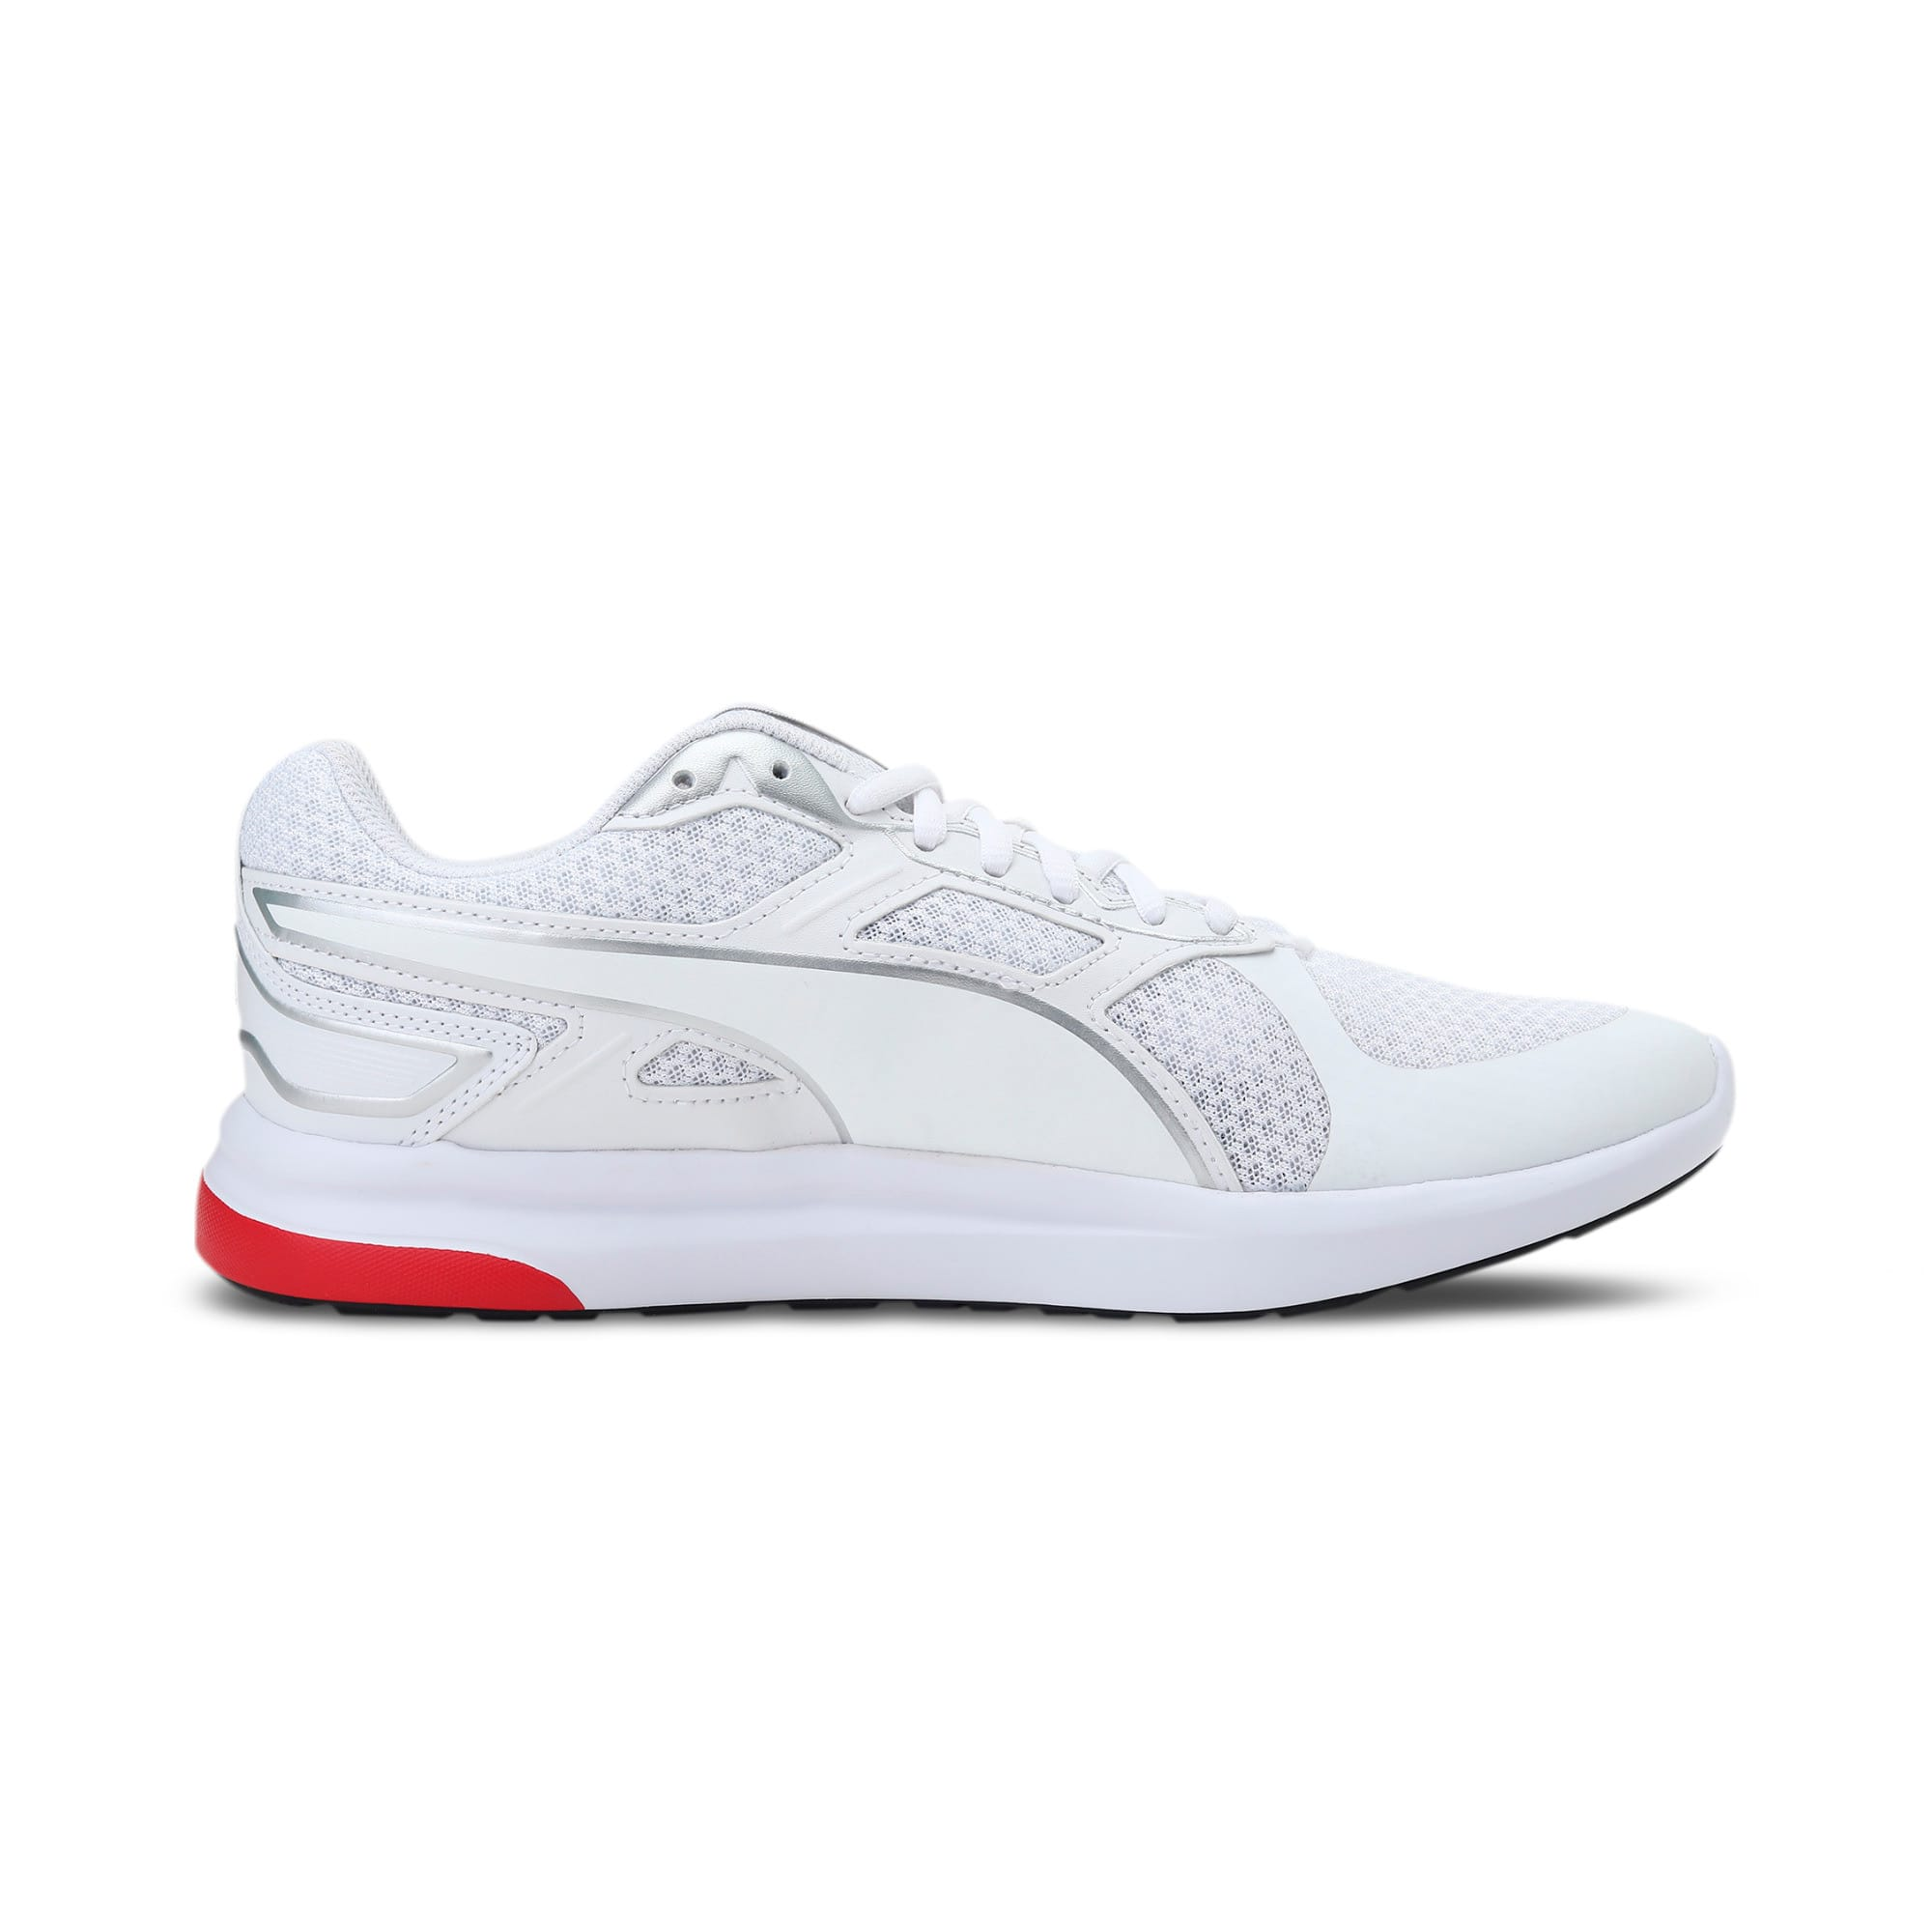 Thumbnail 5 of Escaper Tech Sneakers, White-Silver-High Risk Red, medium-IND